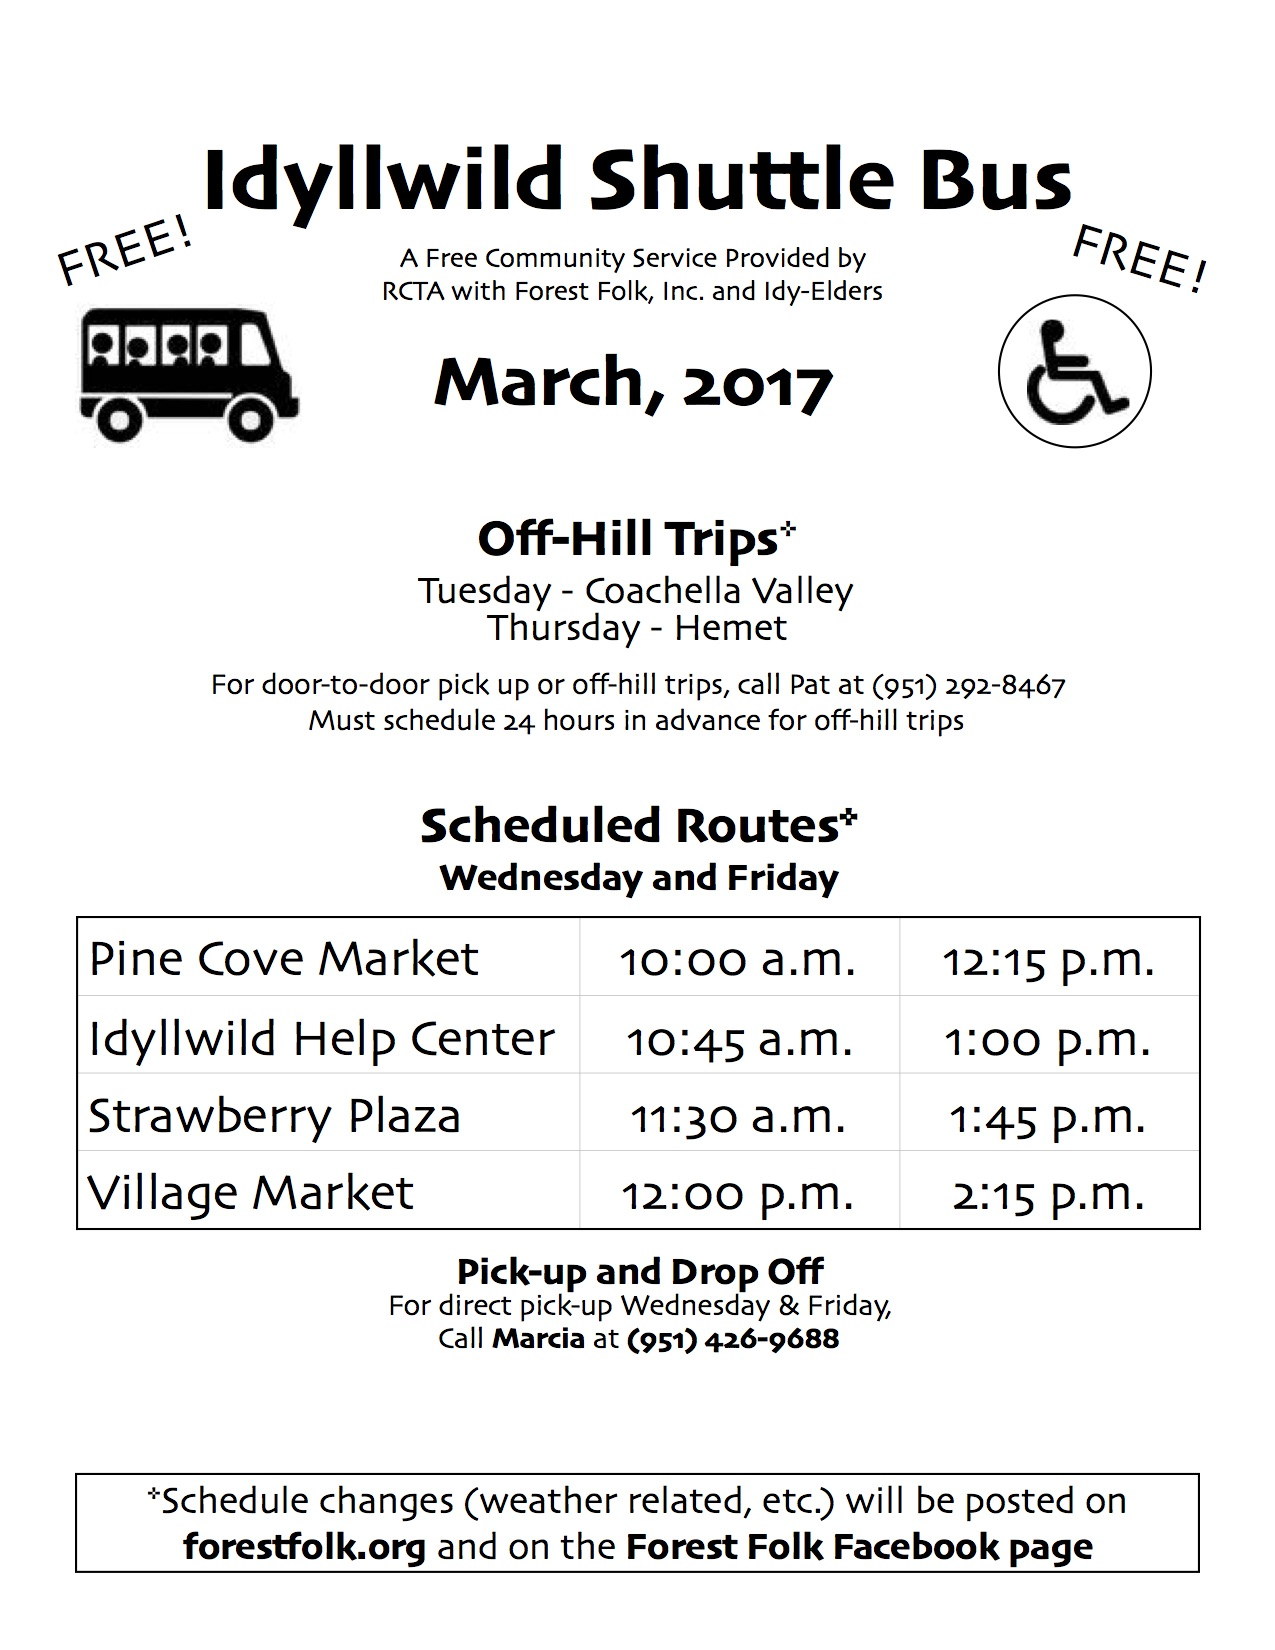 Forest Folk Bus Schedule March 2017 jpg